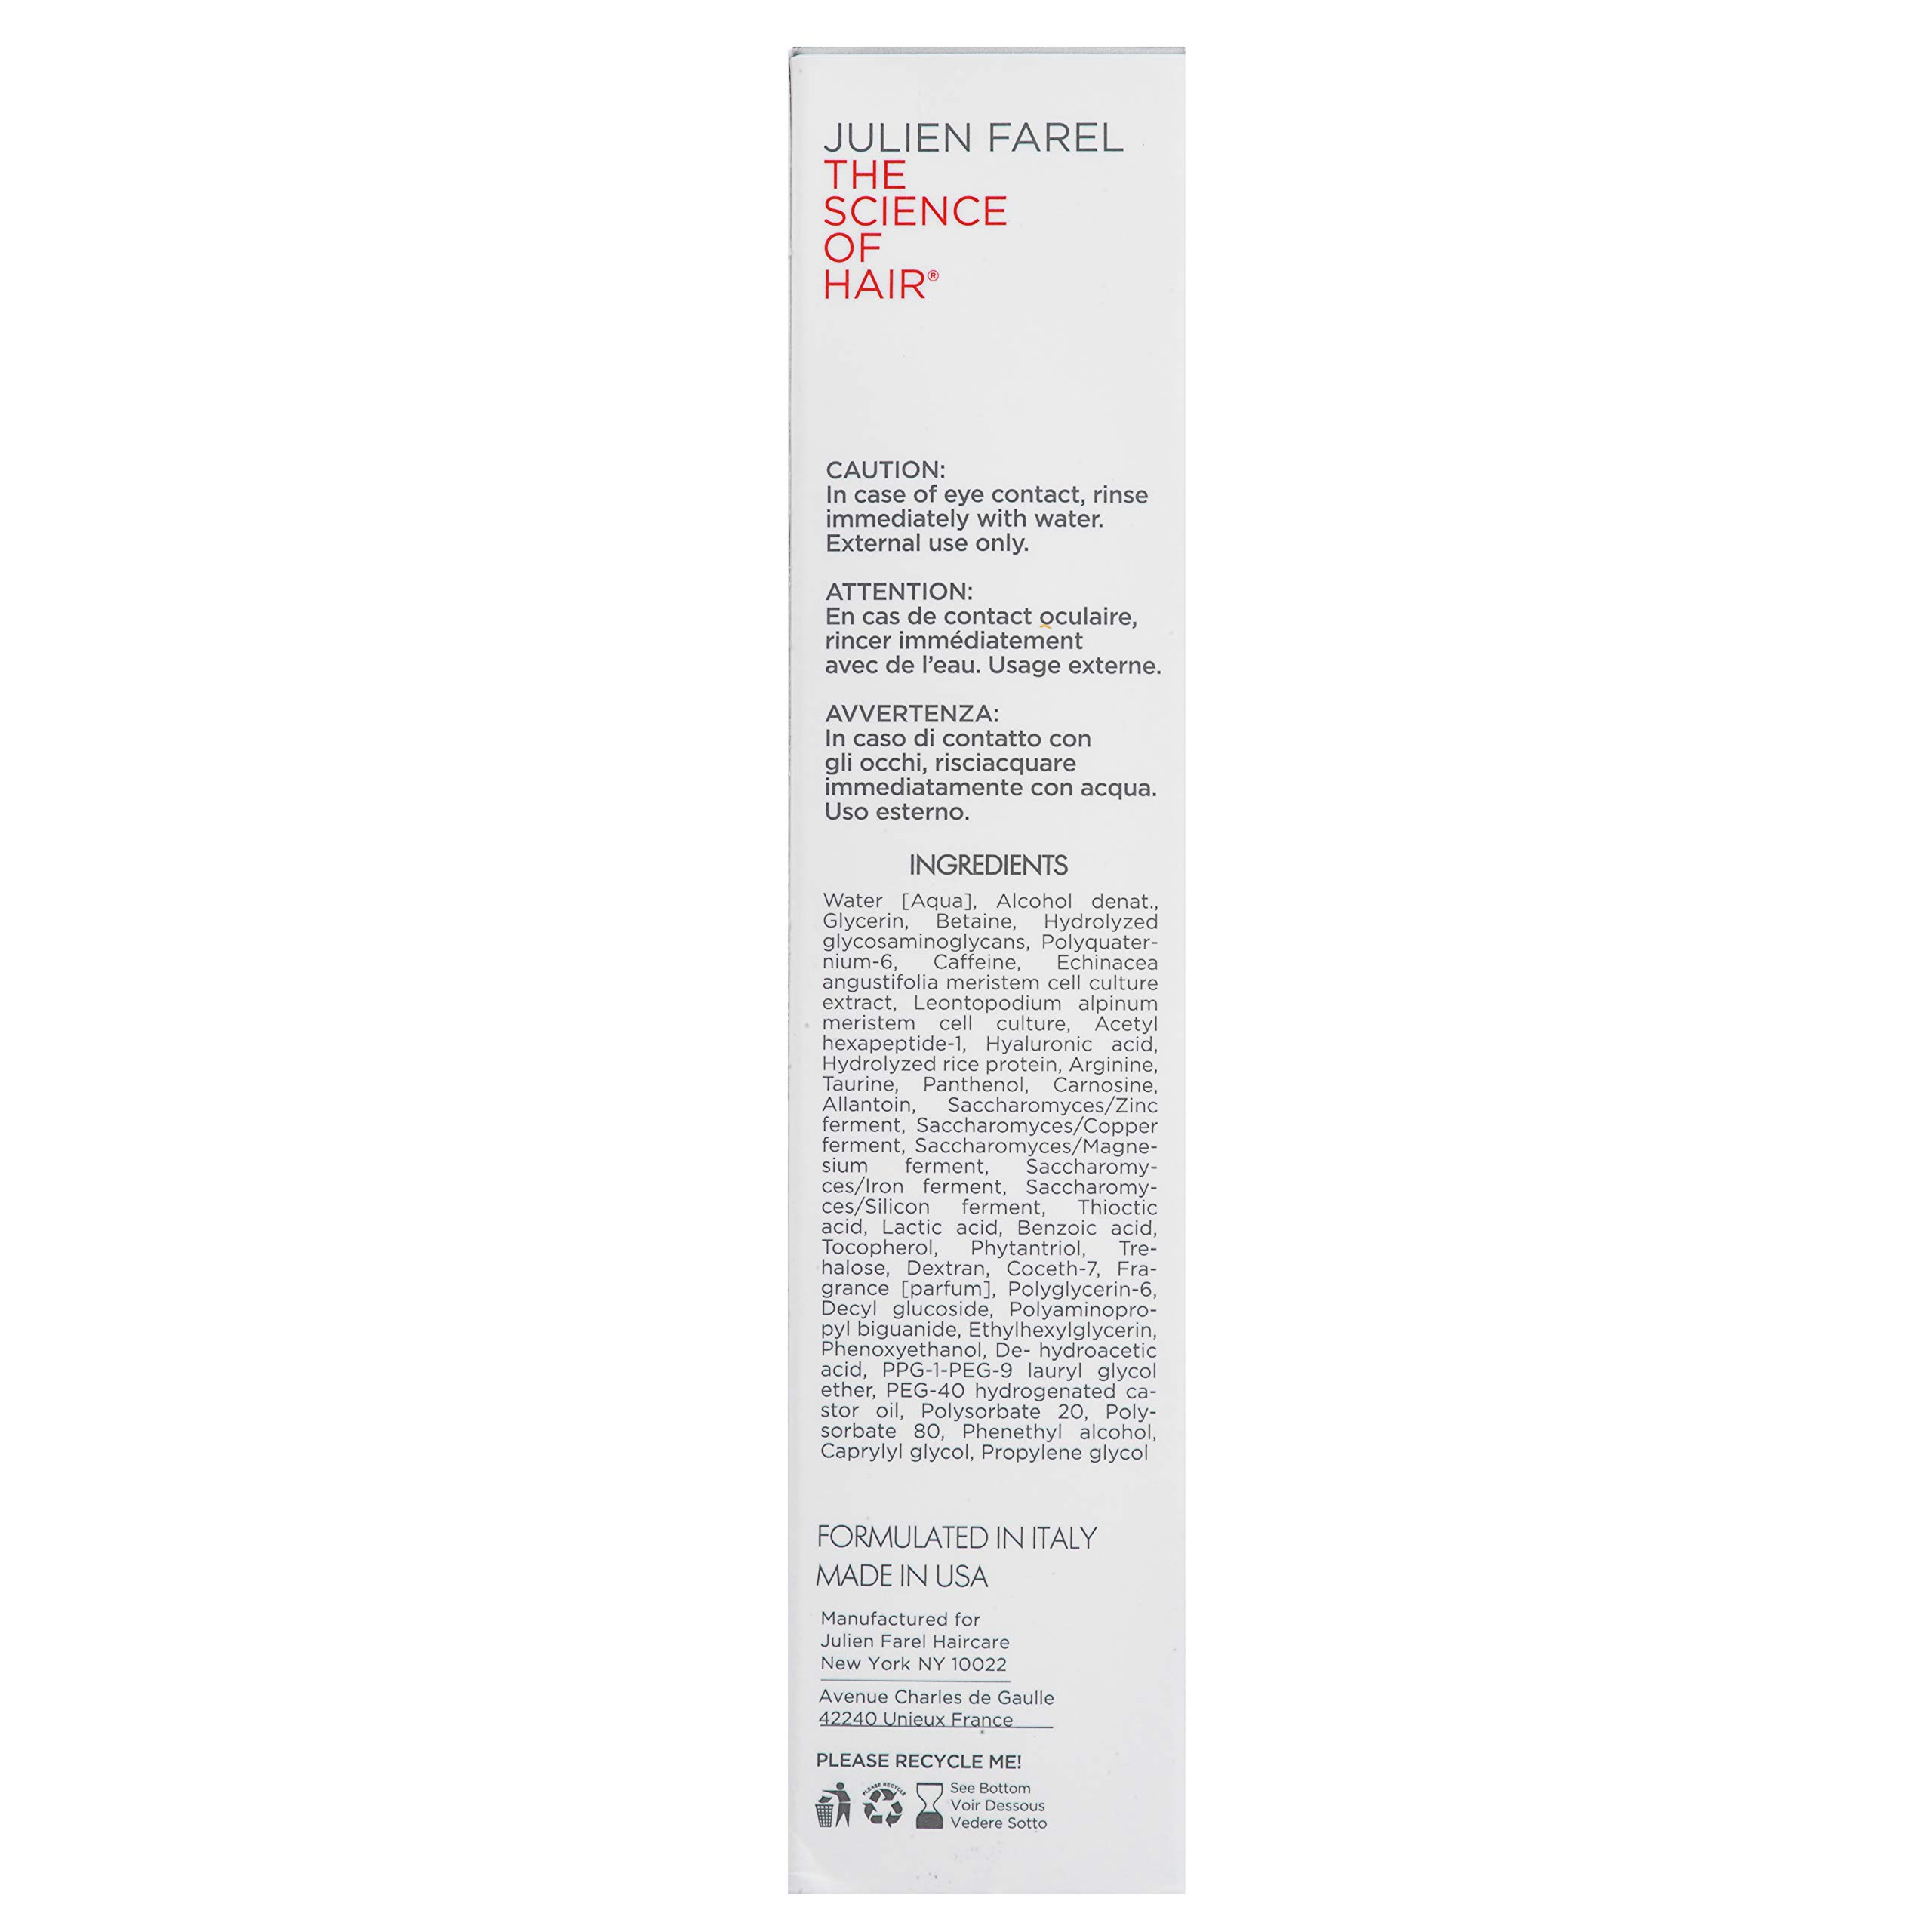 Julien Farel Magnifique Delay The Grey Hair & Scalp Serum, 1.7 Fl Oz – SLS & Paraben Free – Best for Normal, Fine, Thinning, Damaged and All Hair Types, As Seen on The View by Julien Farel Products (Image #4)